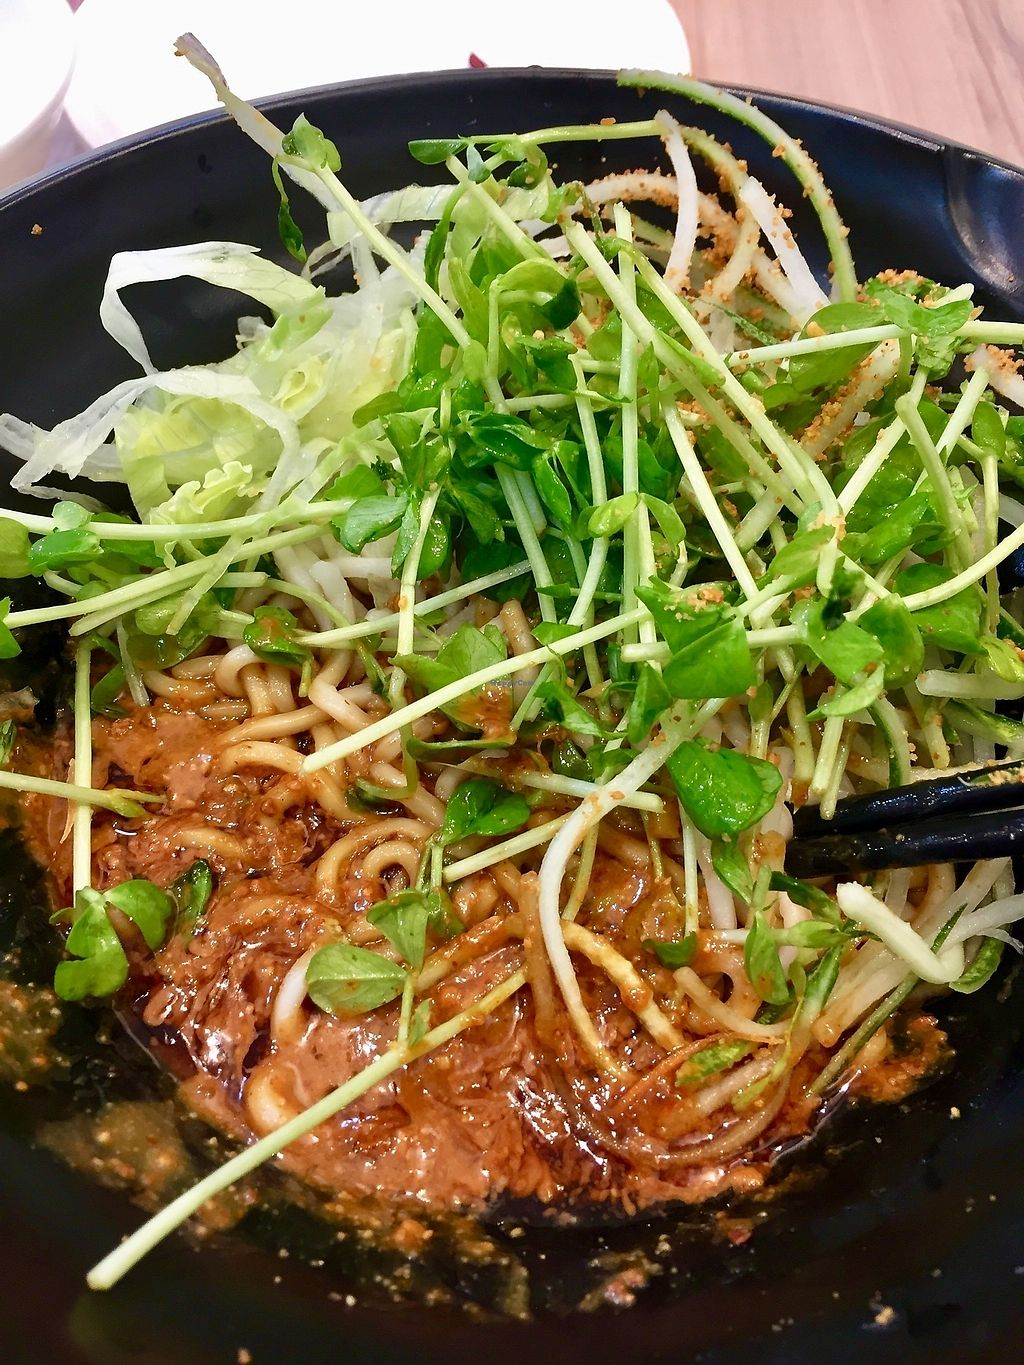 """Photo of Yes Natural Restaurant  by <a href=""""/members/profile/lindyhan"""">lindyhan</a> <br/>Chef's recommendation - Almond Noodles. Best in Singapore and at only $7 nett! Looks similar to zhajiangmian but beats it hands down anyday. It's noodles in almond butter topped with sprouts and shredded lettuce. Mix well to make the magic! <br/> October 20, 2017  - <a href='/contact/abuse/image/13539/316944'>Report</a>"""